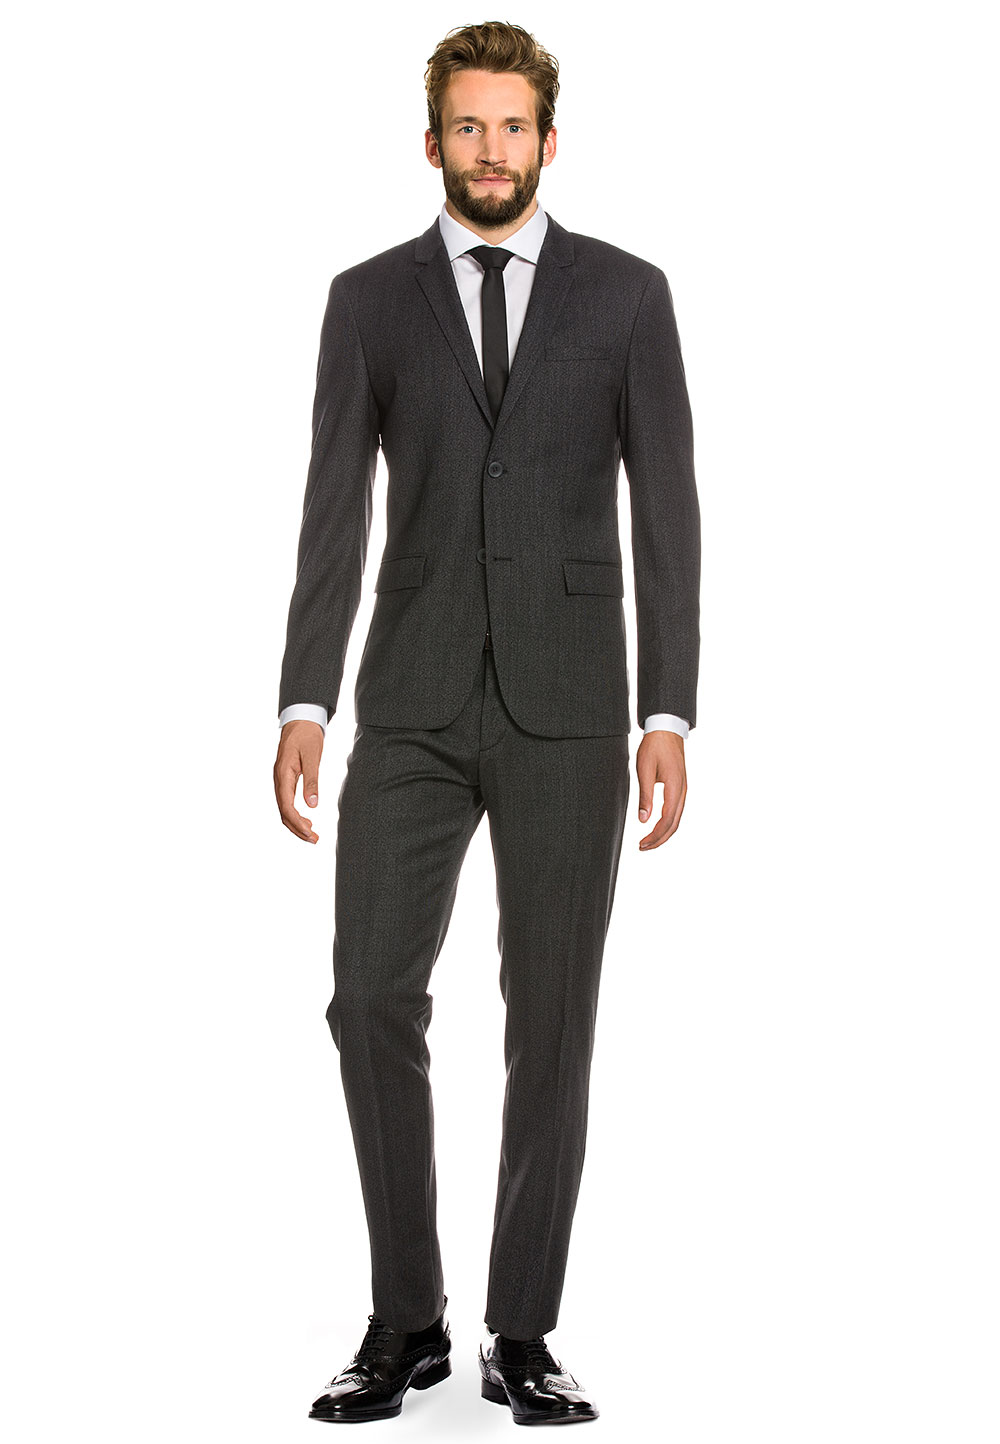 Calvin Klein Anzug, Wolle, Fitted Fit grau | Bekleidung > Anzüge & Smokings > Anzüge | Grau | Calvin Klein